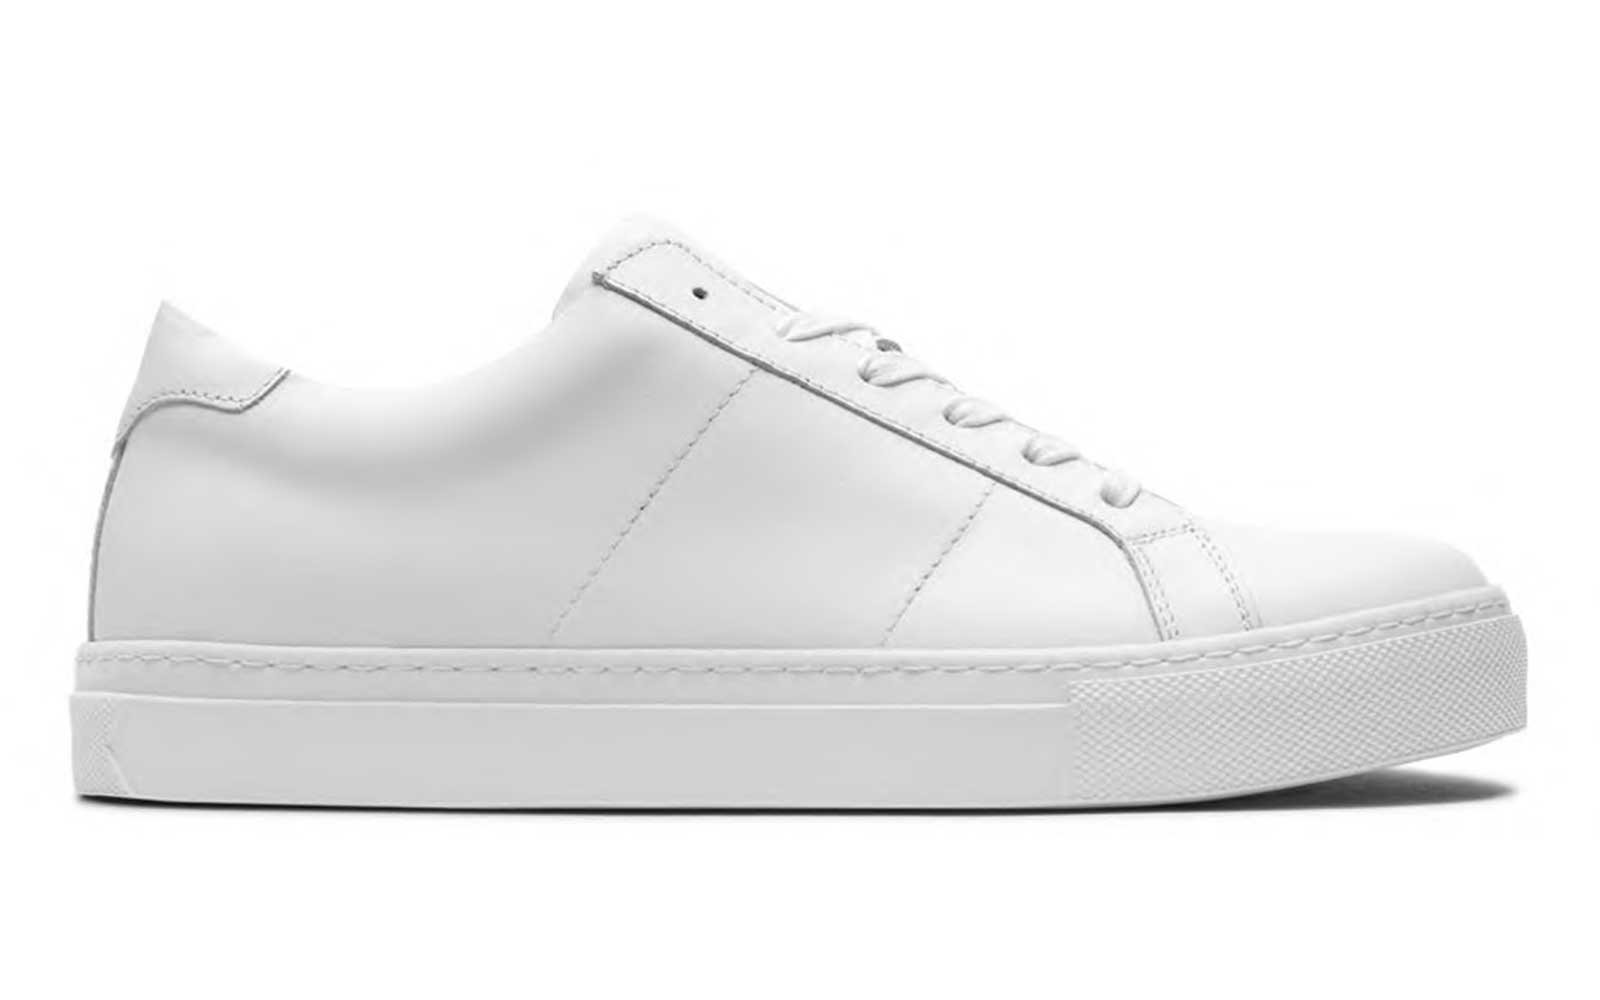 For Travel 17 Sneakers Women Leisure With Go Everything That White EAqAnp86